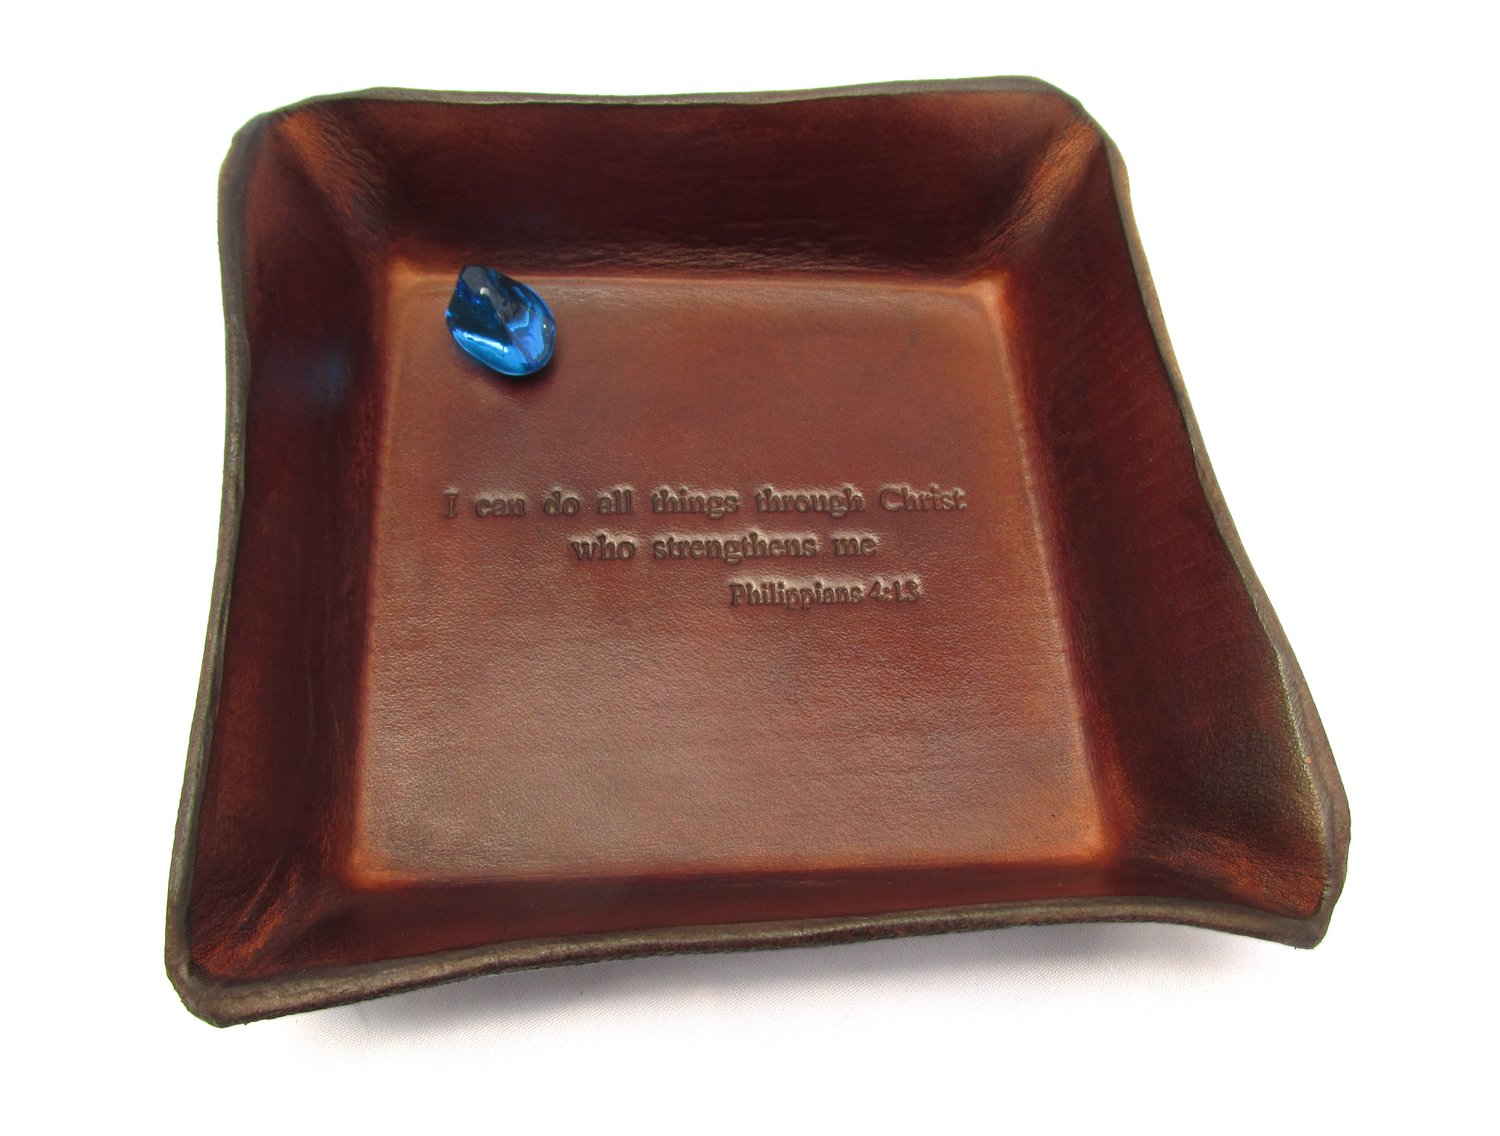 Twin Saints Christian Religious Gift. Philippians 4:13 Leather Tray. I Can Do All Things Through Christ Who Strengthens Me.